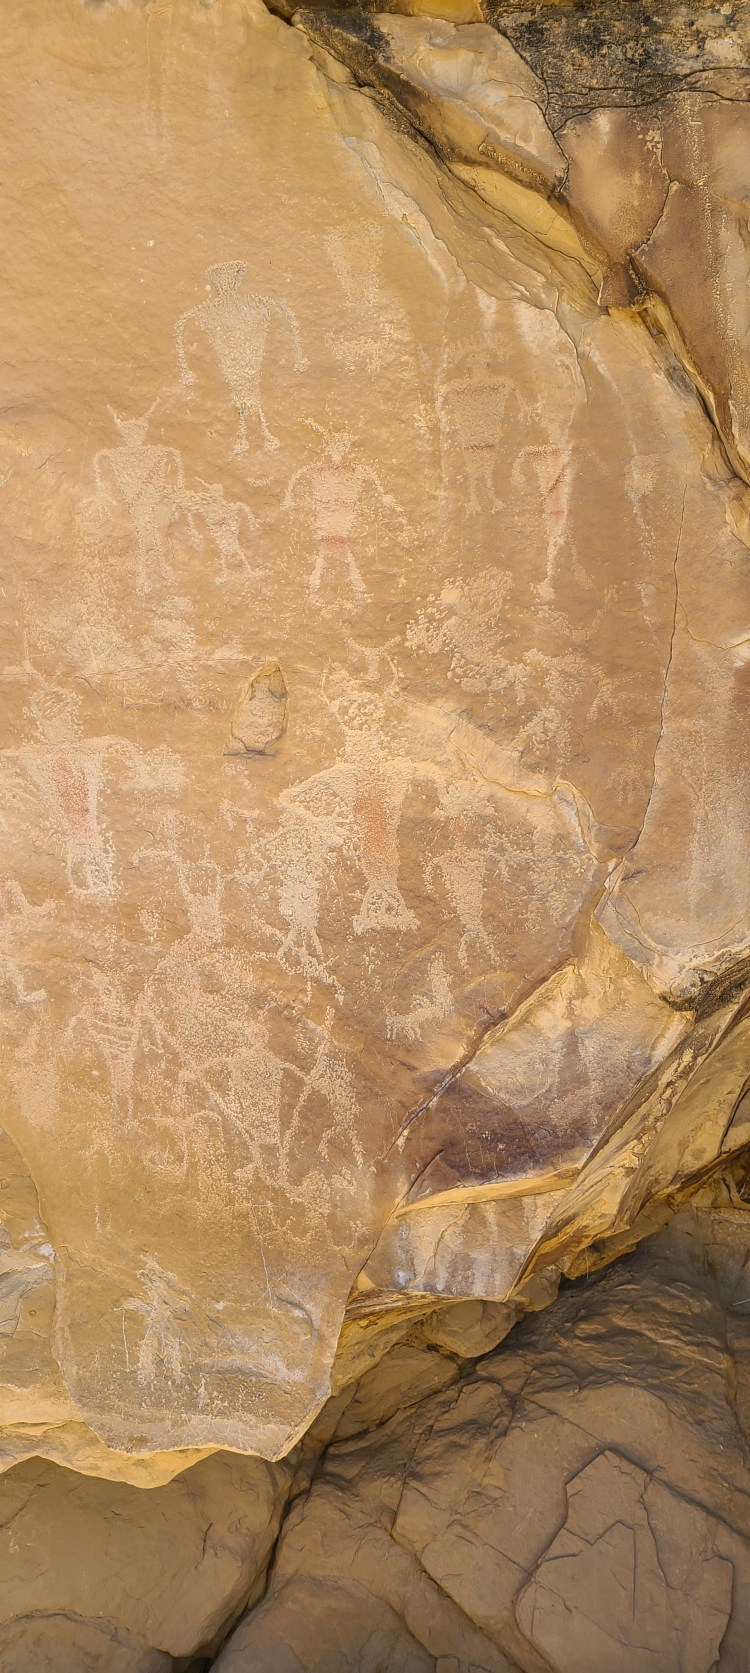 Petroglyphs at Swelter Shelter in Dinosaur National Monument